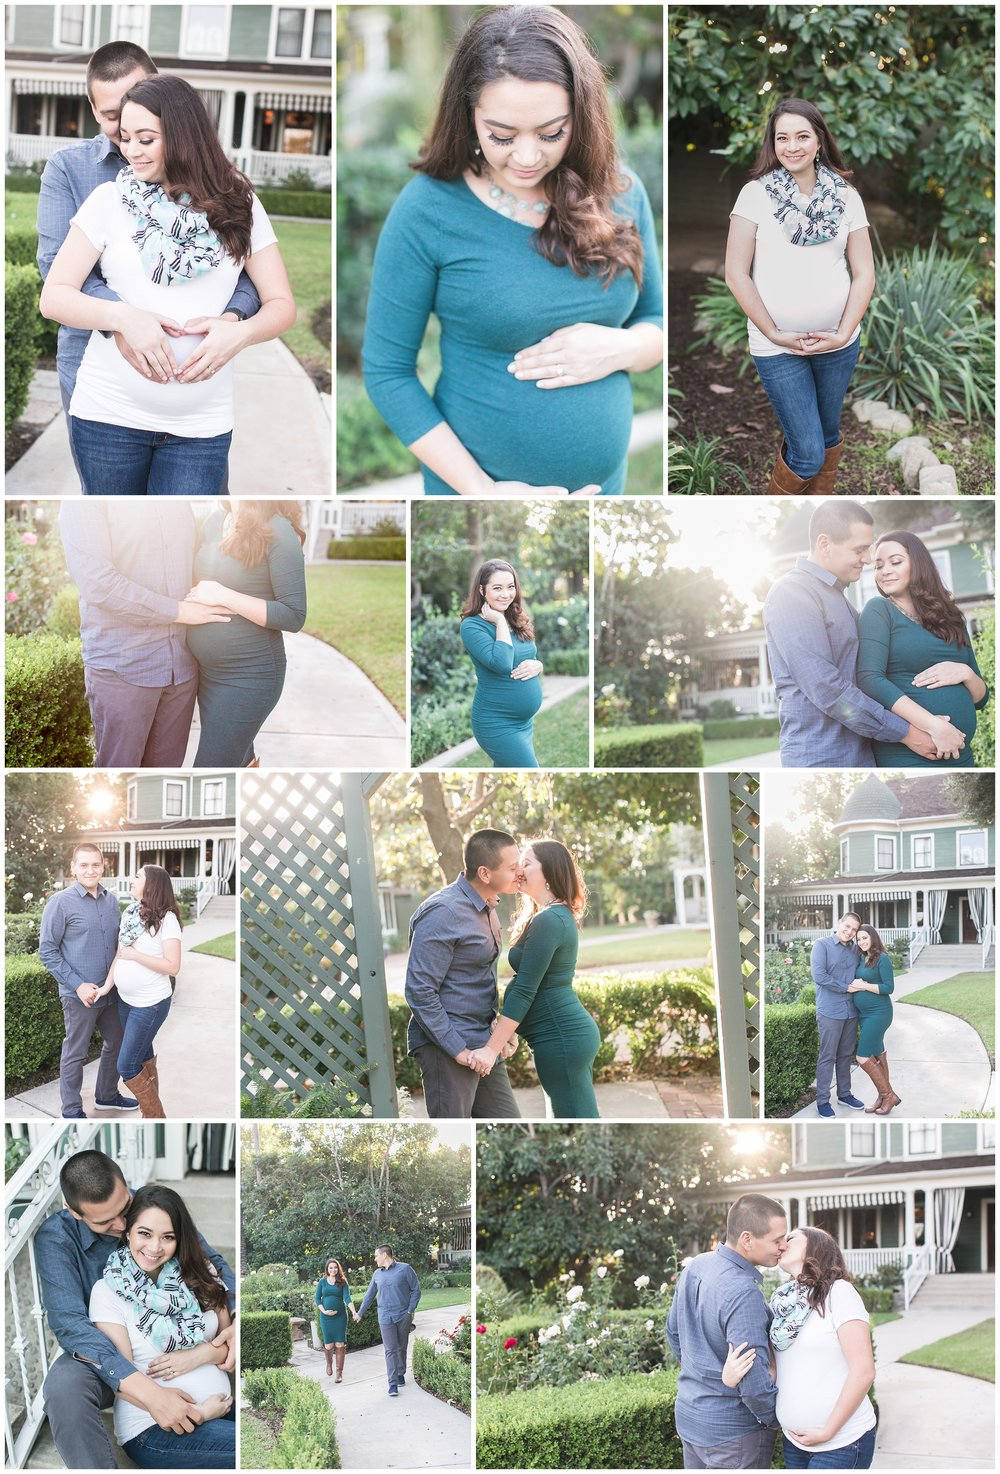 garden maternity session christmas house inn and gardens carrie vines southern california photographer portrait photography